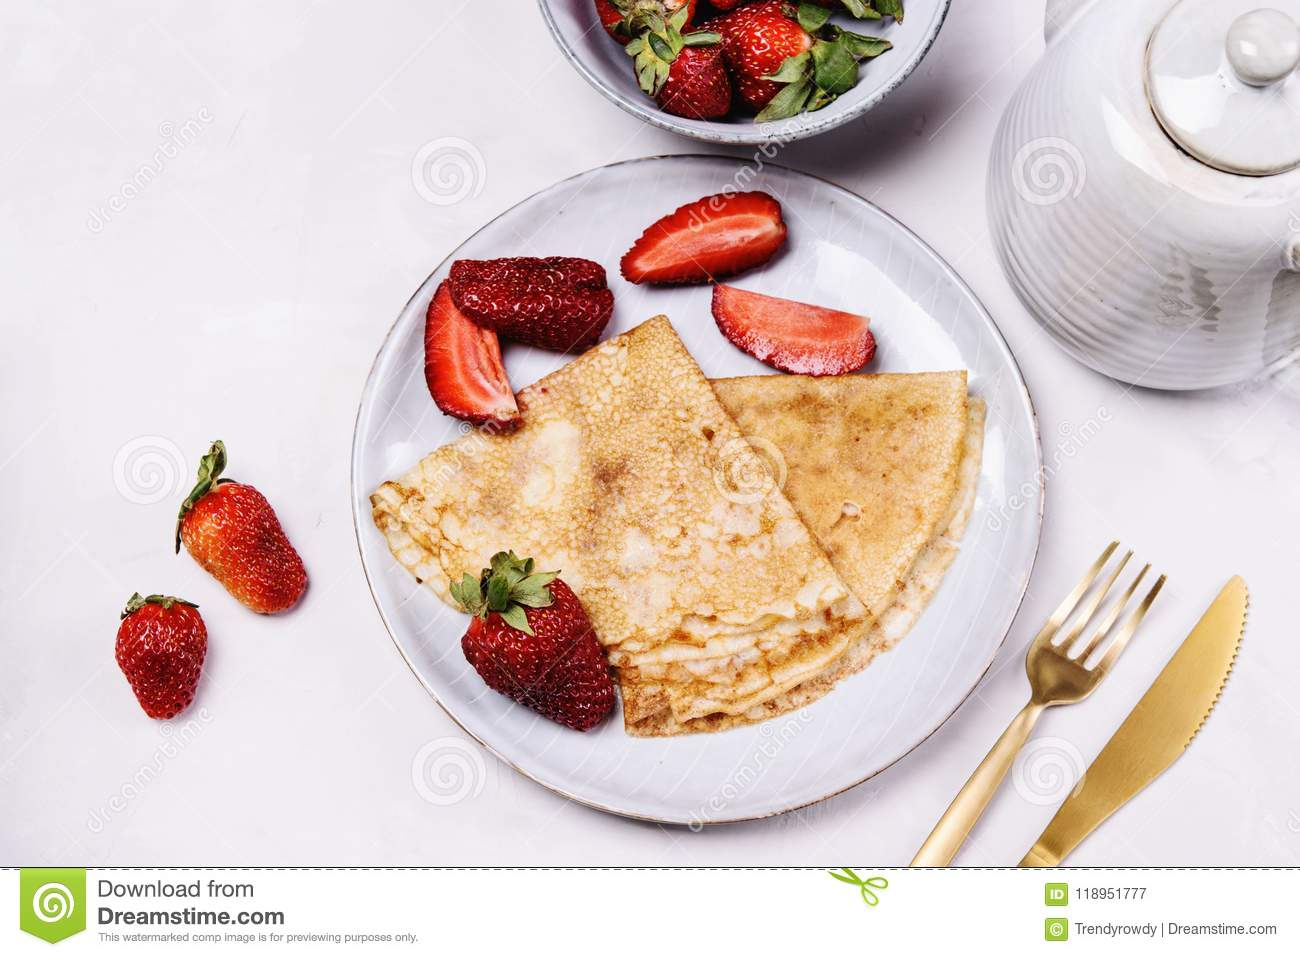 Openwork thin cheese crepes served with strawberry on grey concrete background